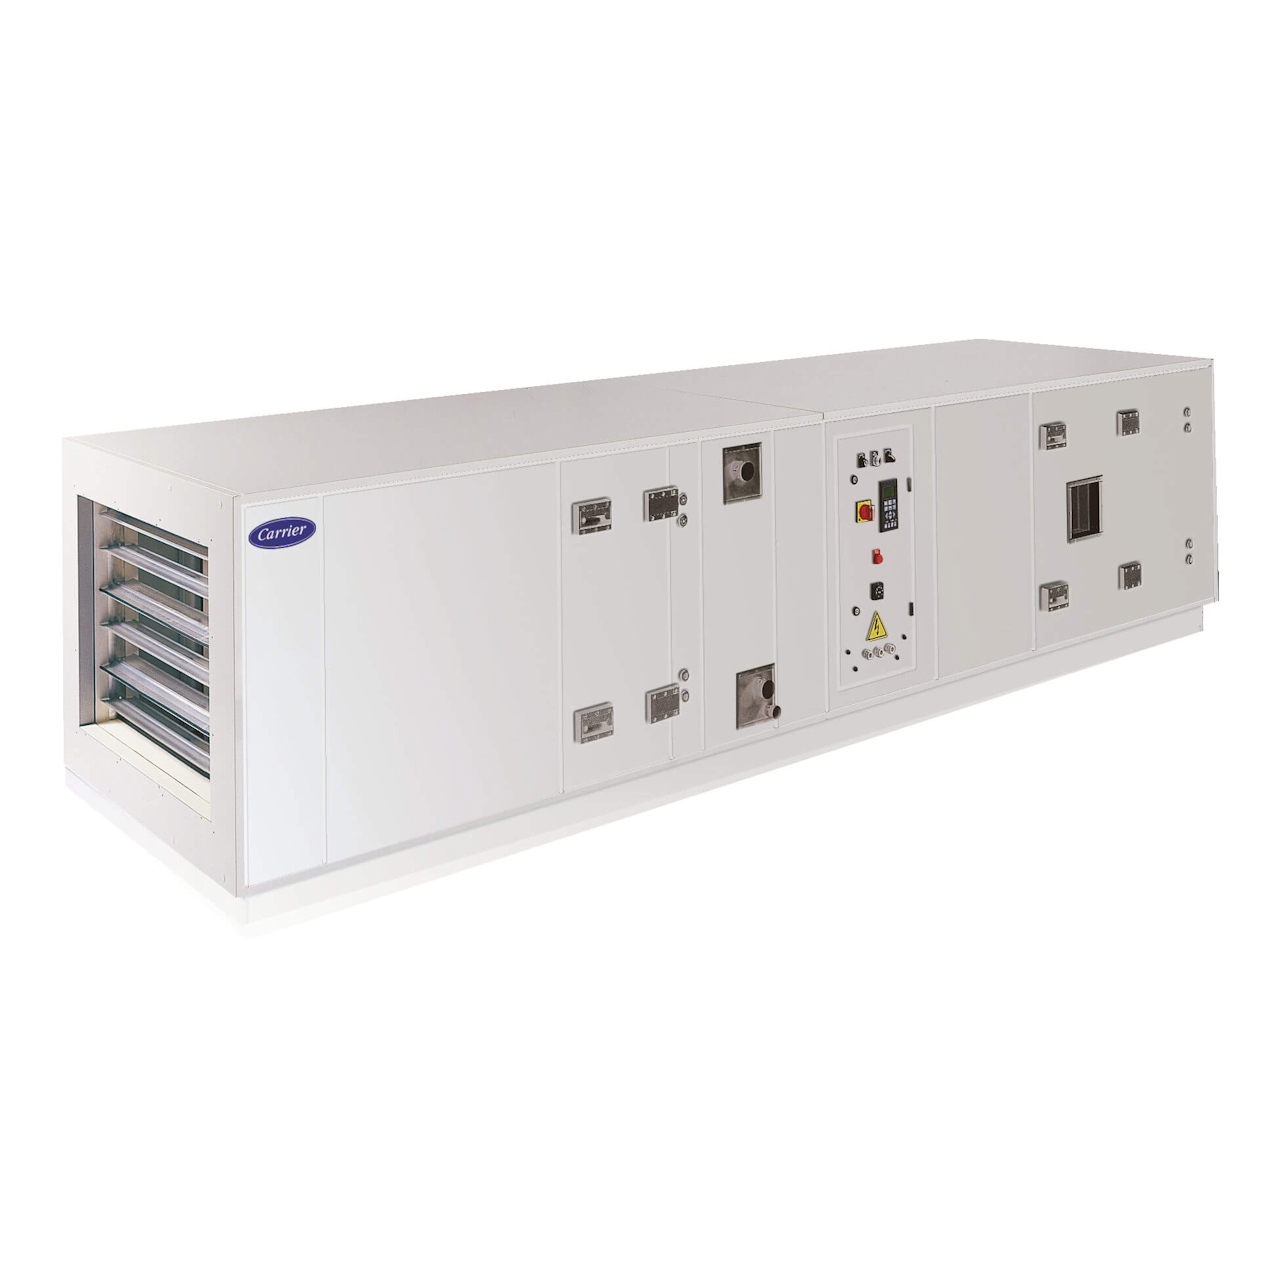 carrier-39CZ-air-handling-unit-multibloc